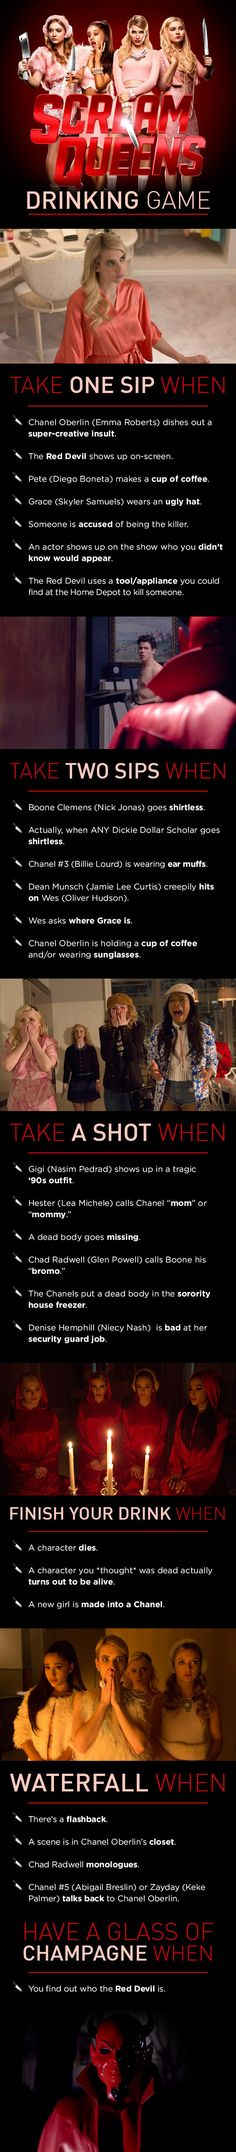 """This Is The Scary Good """"Scream Queens"""" Drinking Game You Need   OMG YES"""